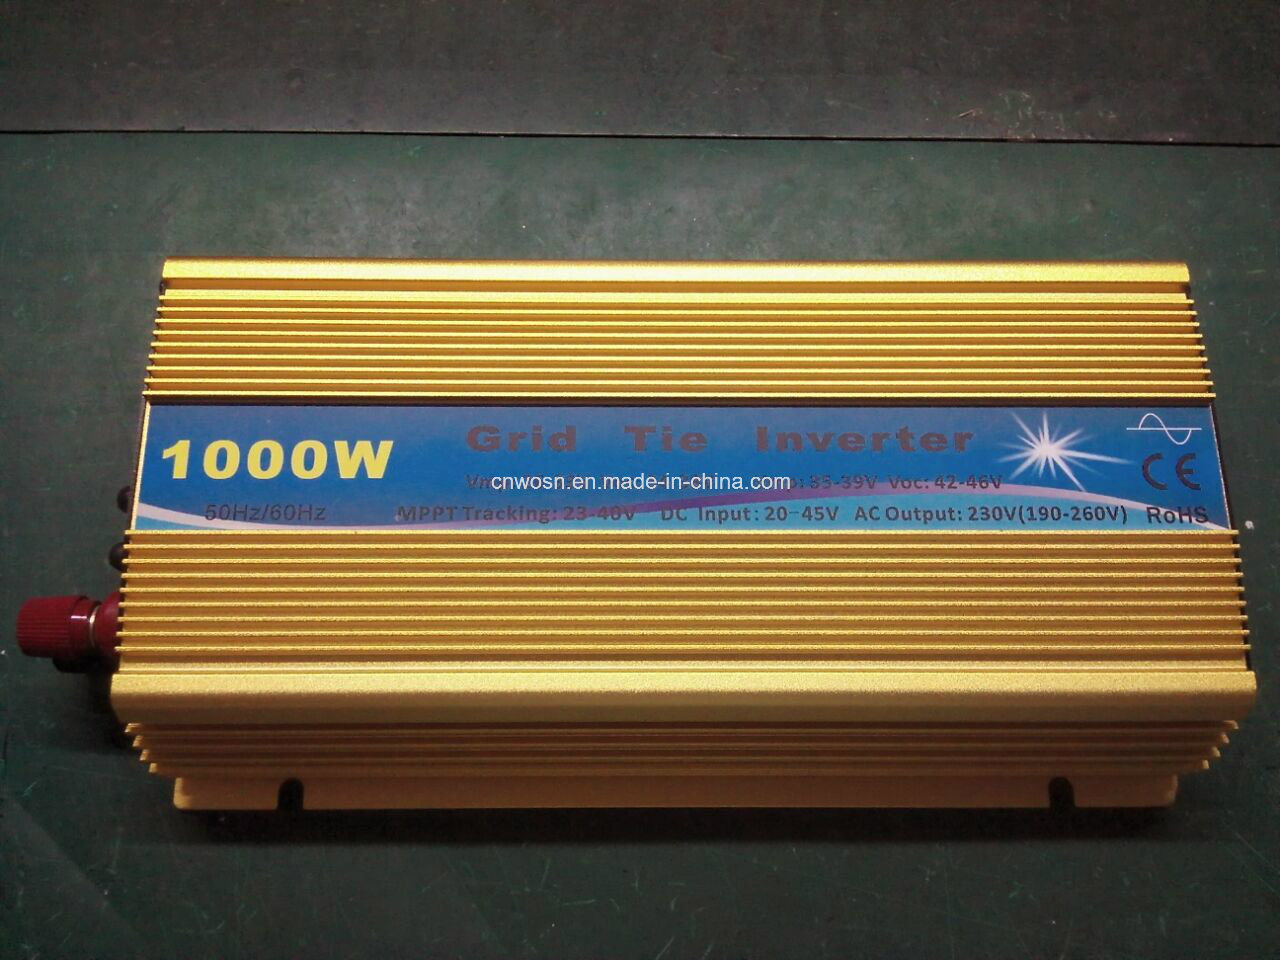 1000W/1kw on Grid Tie Solar Inverter for Solar Power System